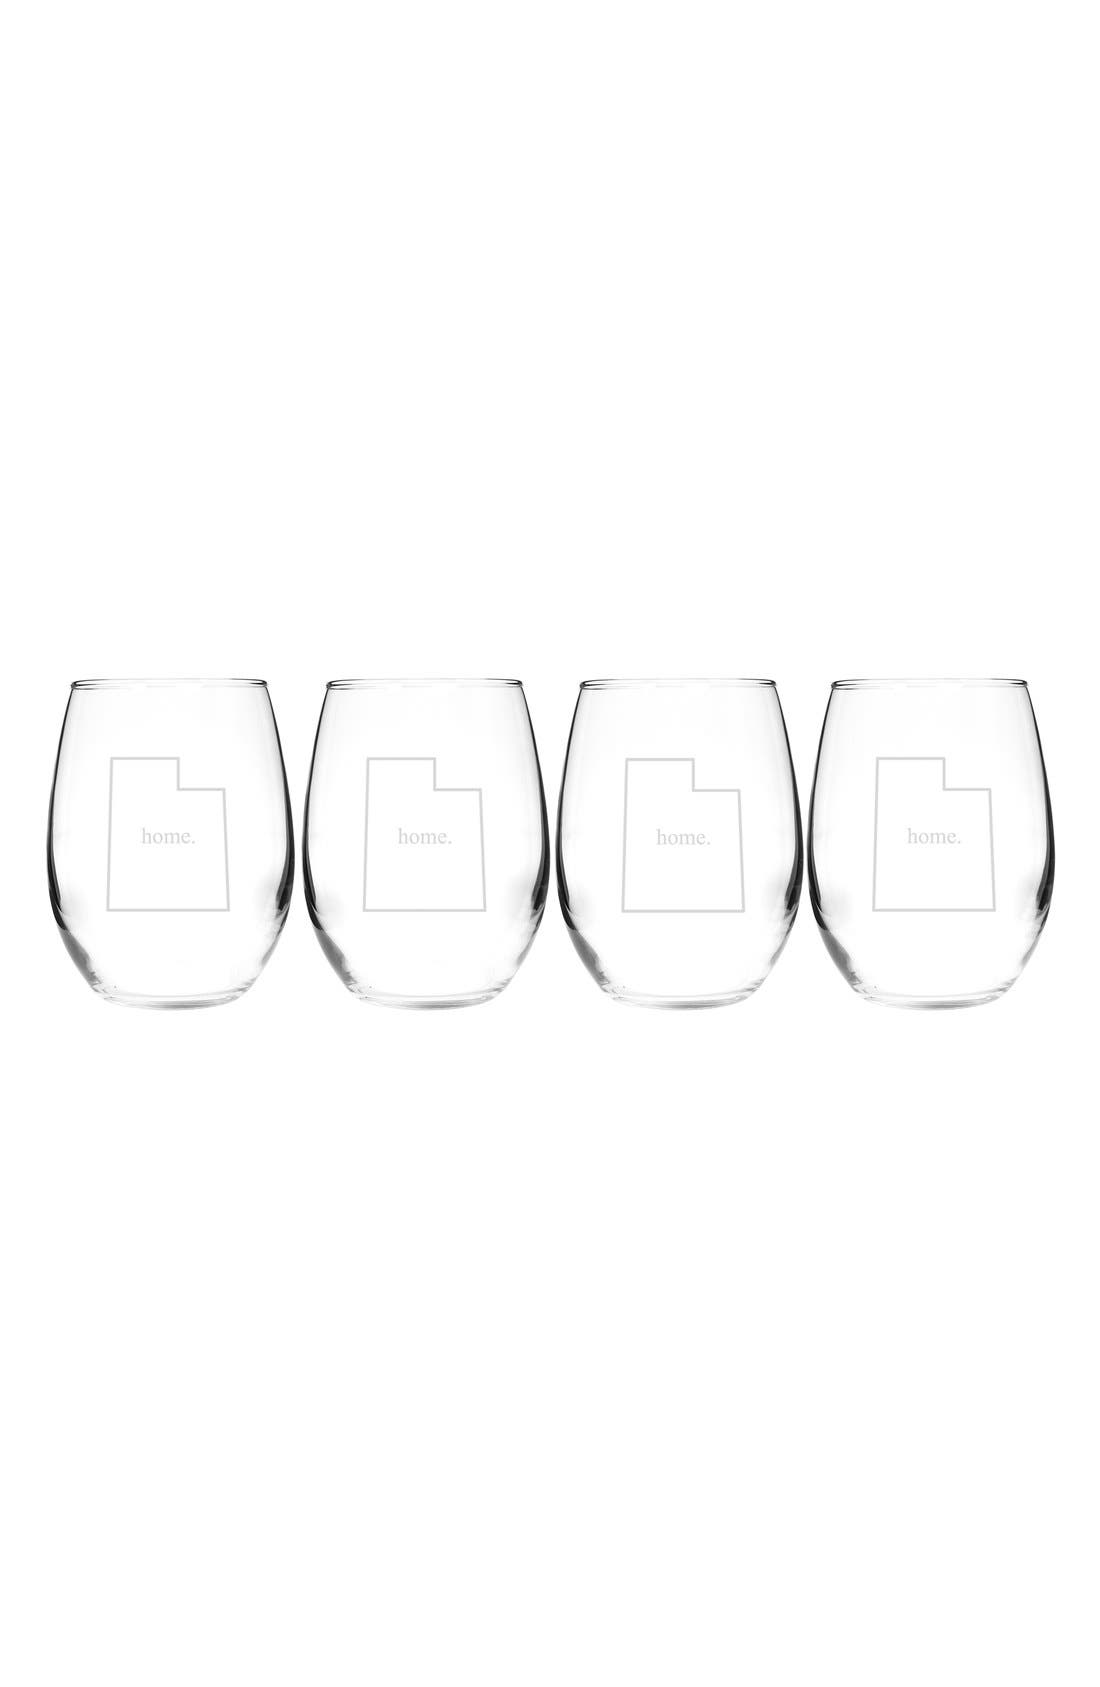 Main Image - Cathy's Concepts Home State Set of 4 Stemless Wine Glasses